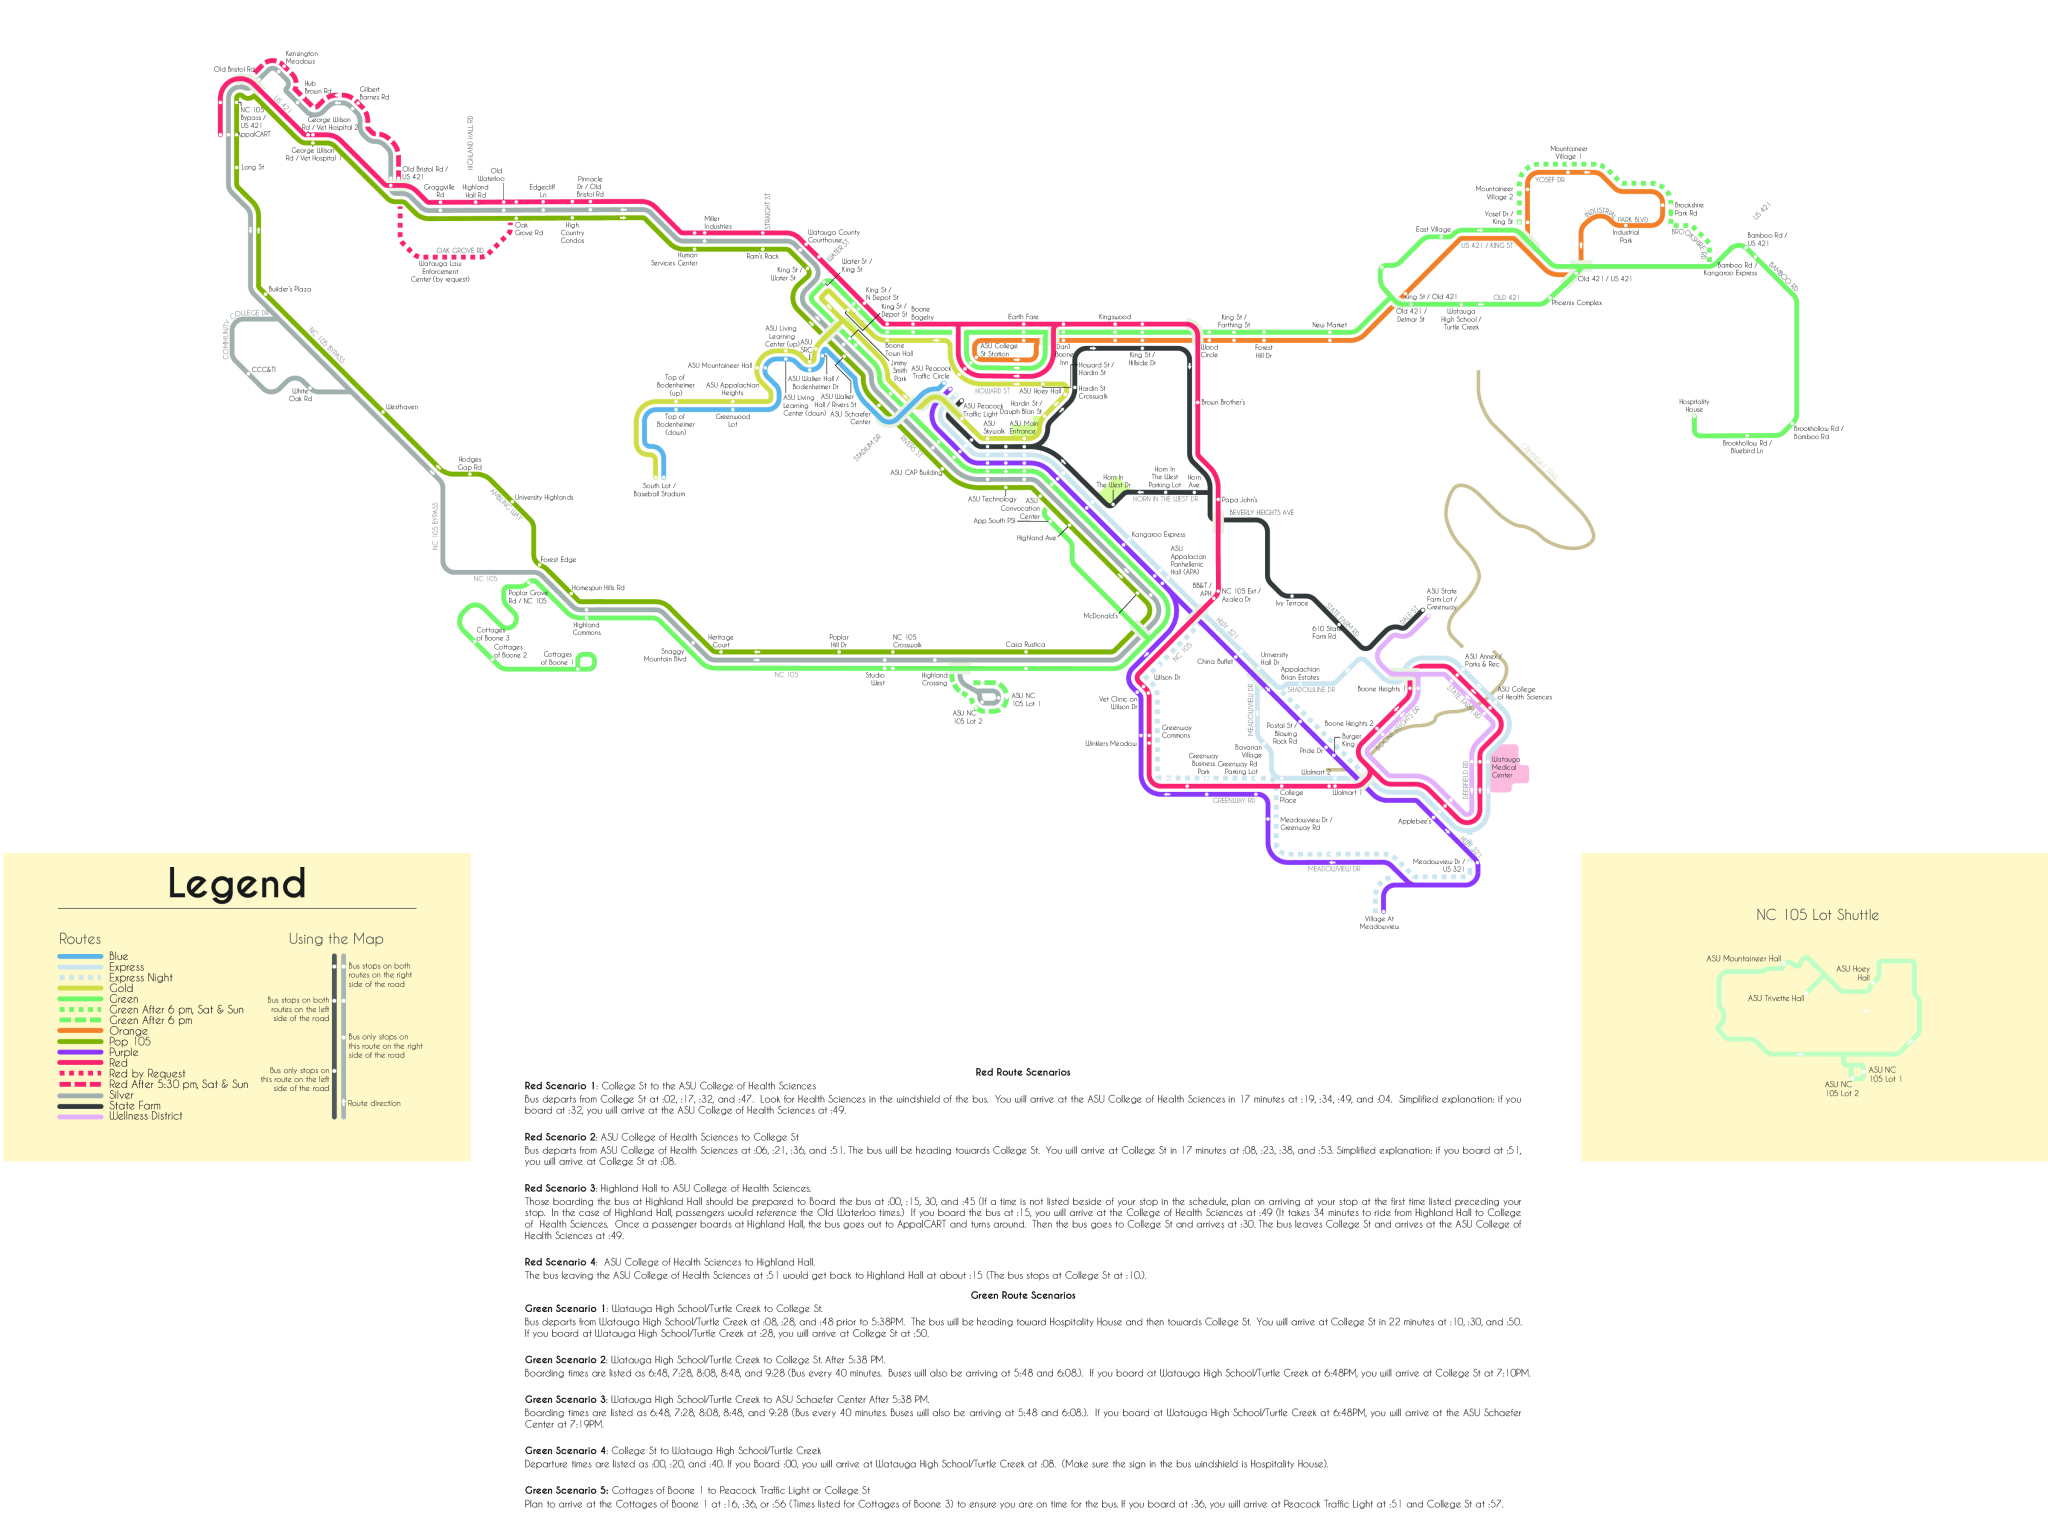 Adjustments made to AppalCart routes